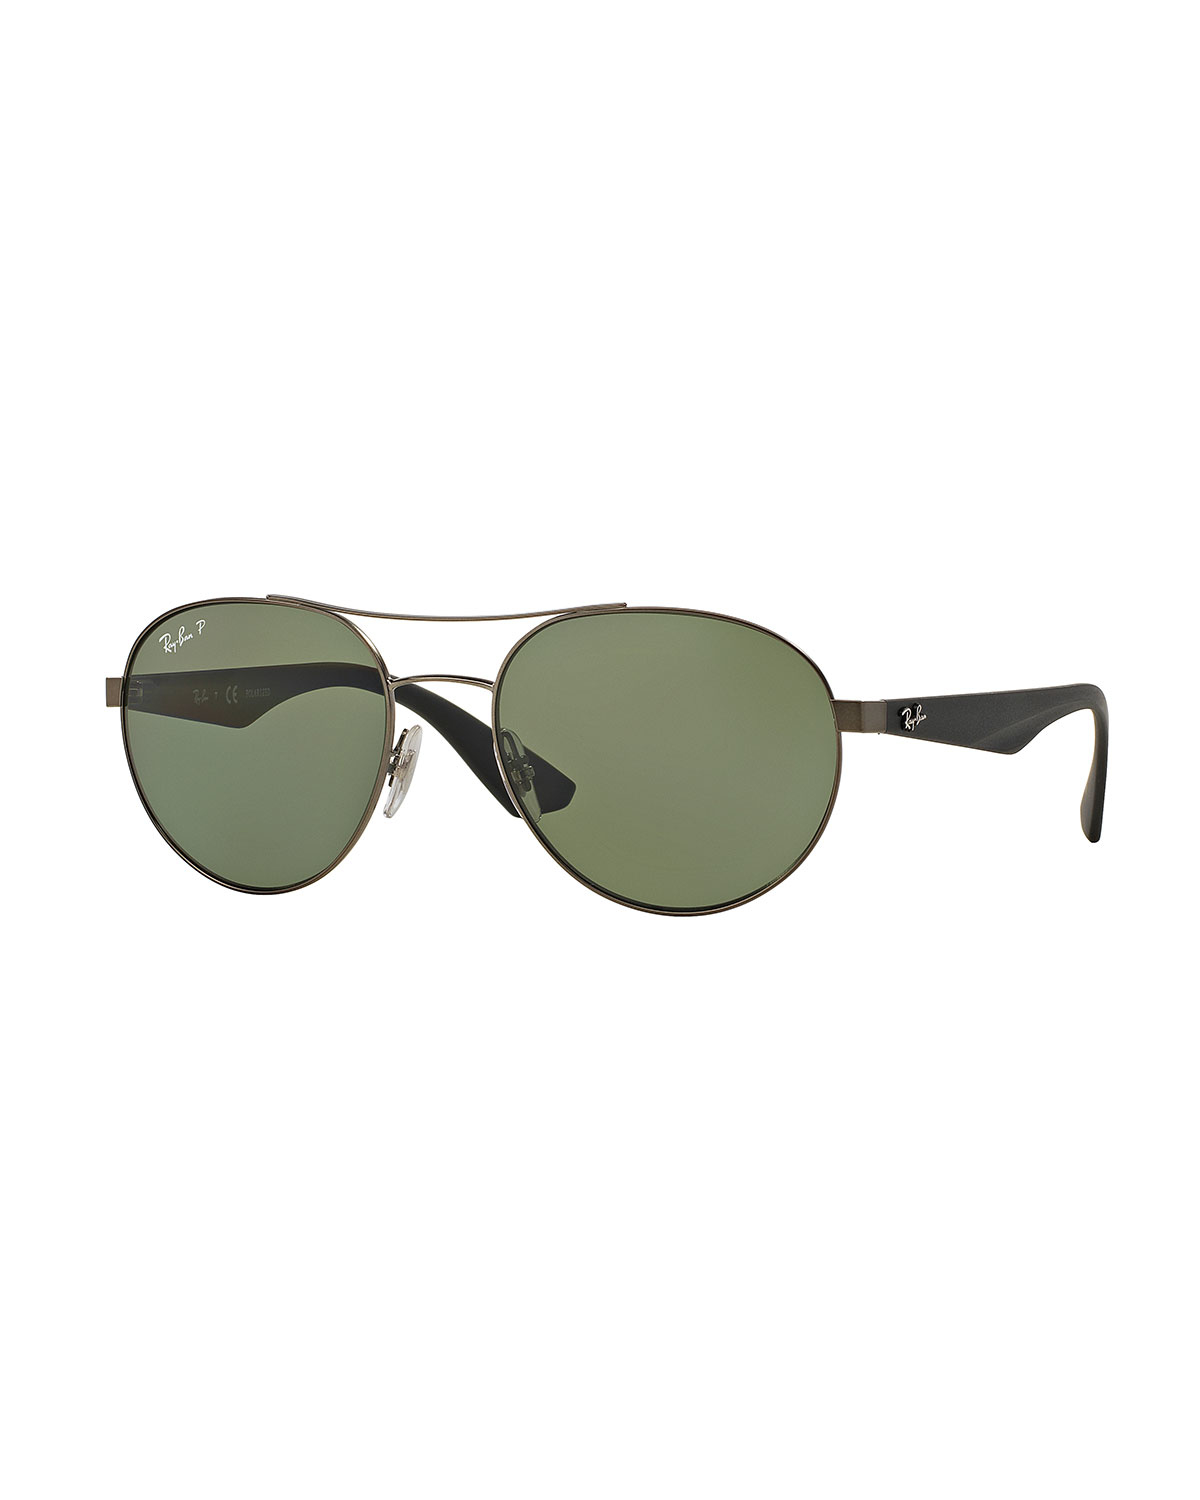 776226419f6 Ray Ban Glasses Frames For Men « Heritage Malta